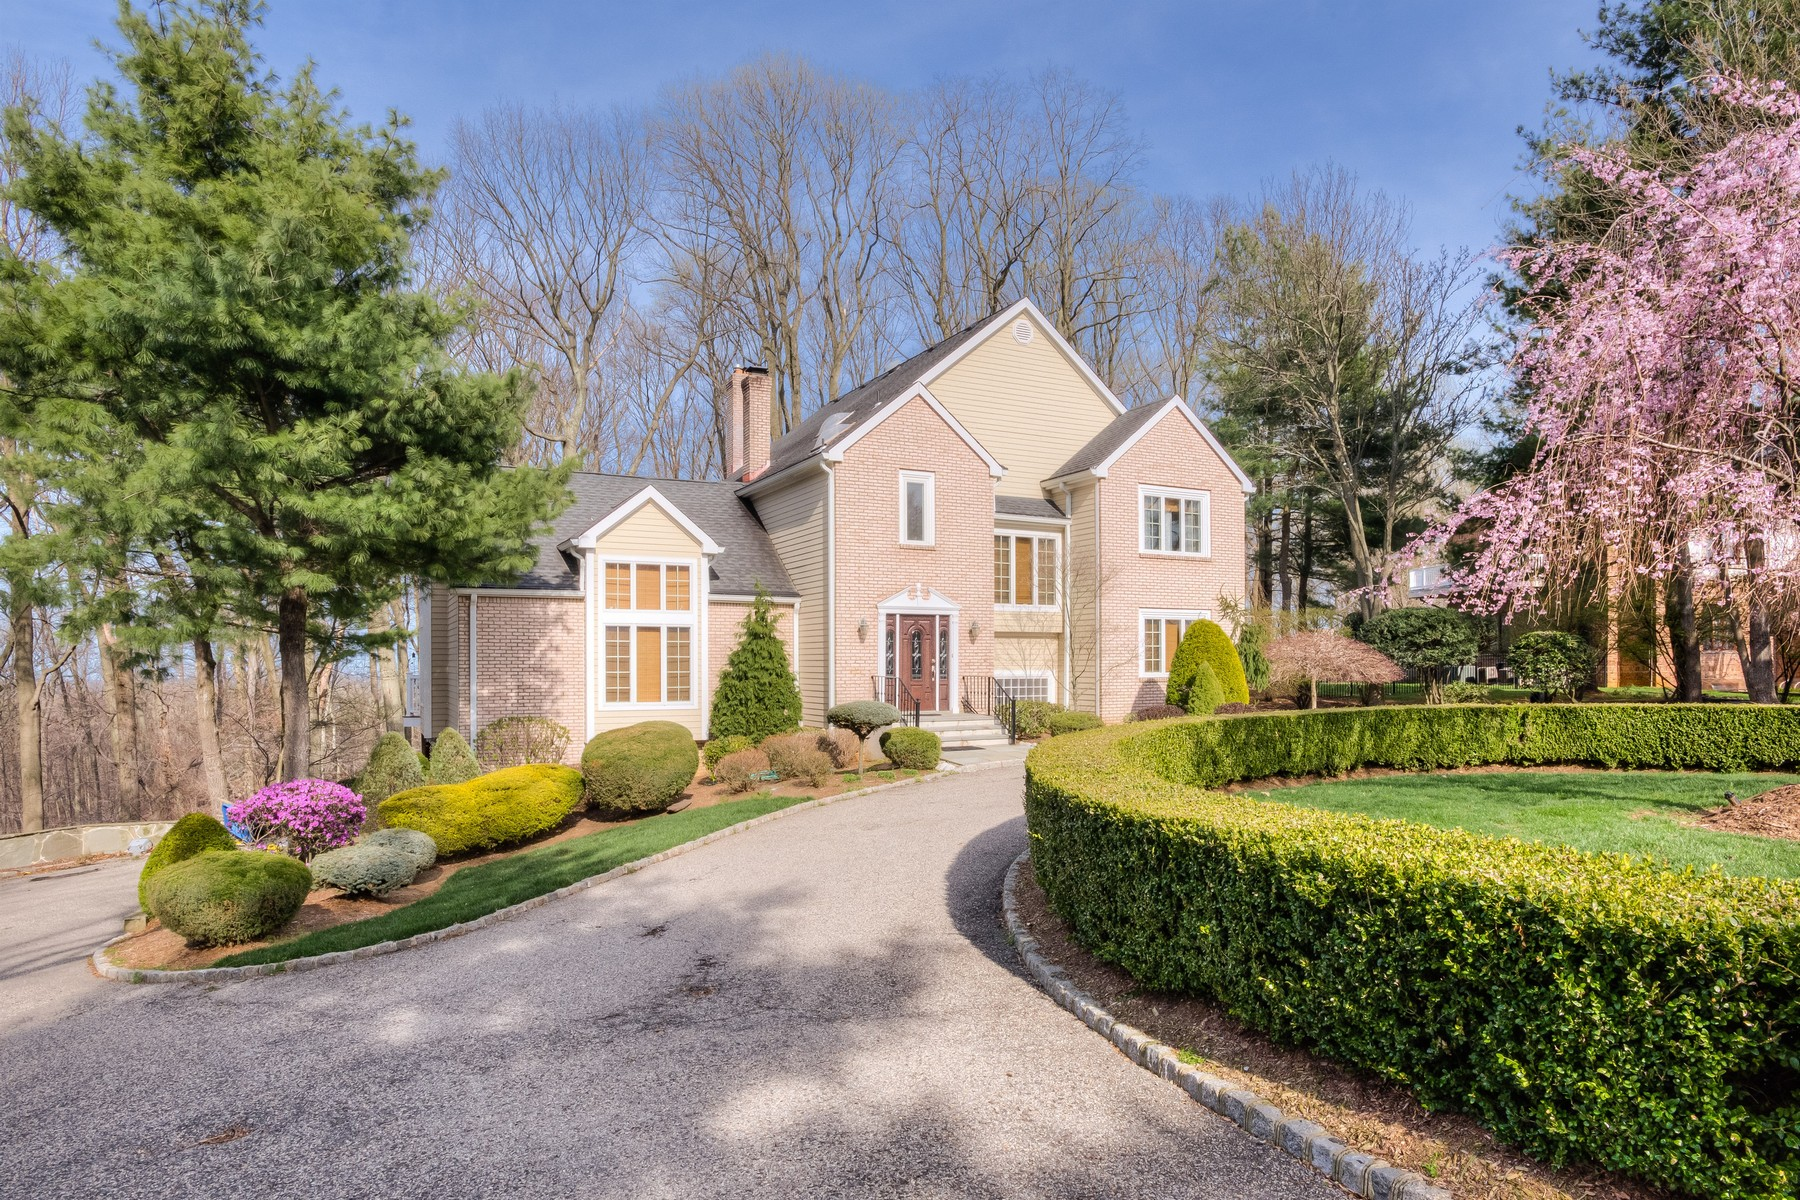 Single Family Home for Sale at Hilltop Privacy 10 Alexis Court Holmdel, 07733 United States